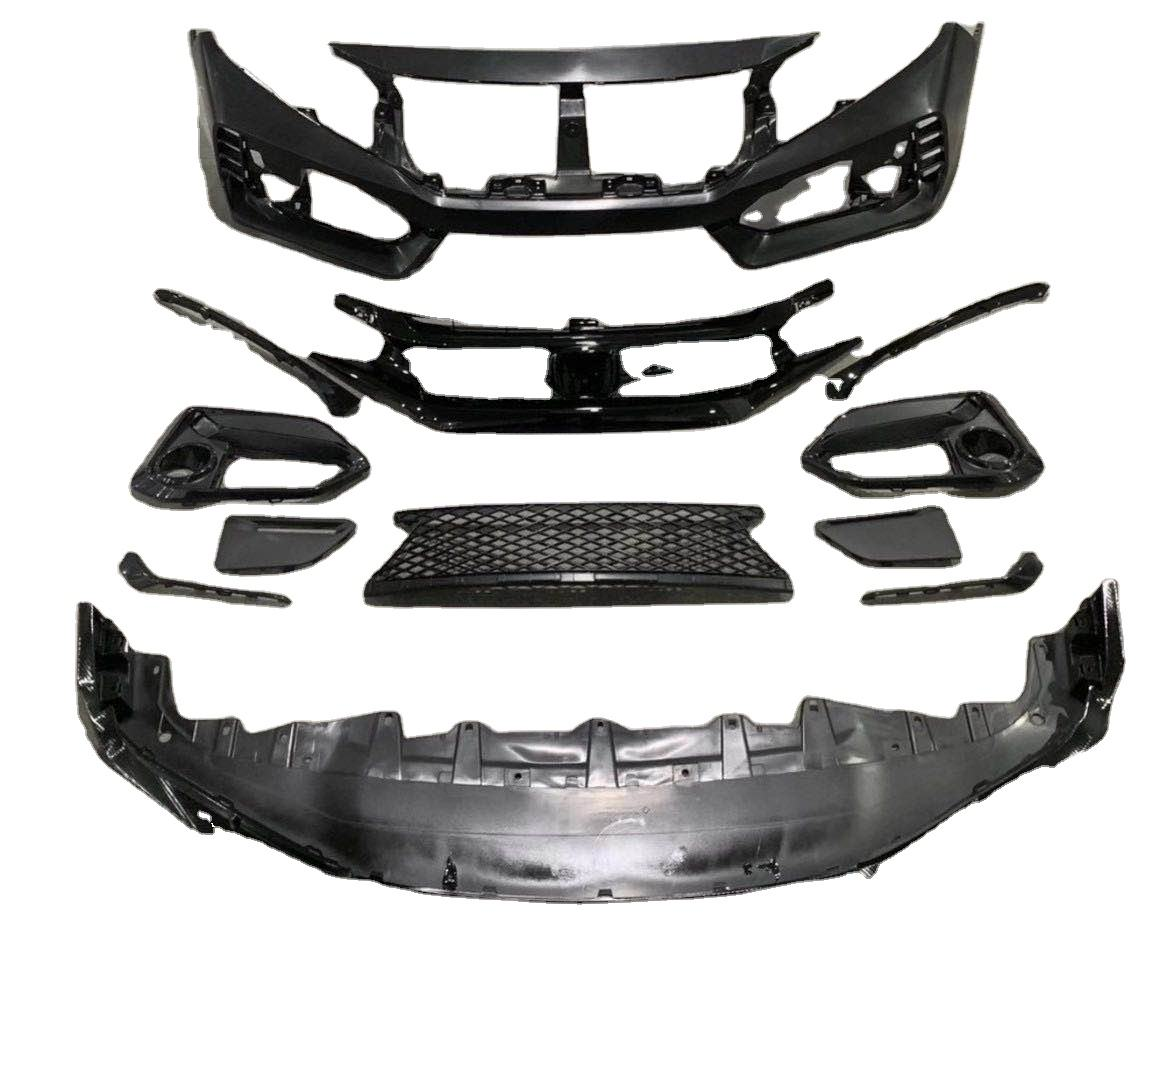 Suitable for 2021 Honda Civic FC Type R SI body kit, front bumper kit, fog lamp frame, front spoiler